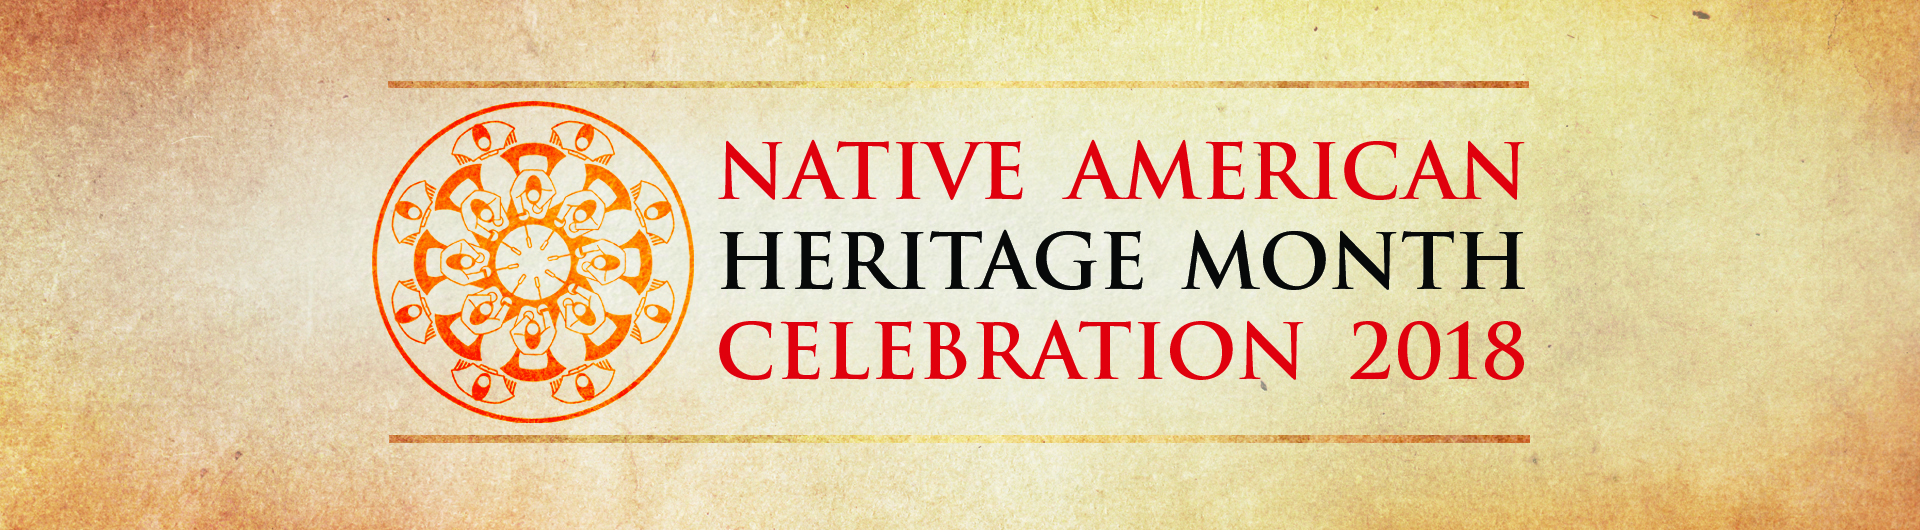 Native American Heritage Month Celebration 2018